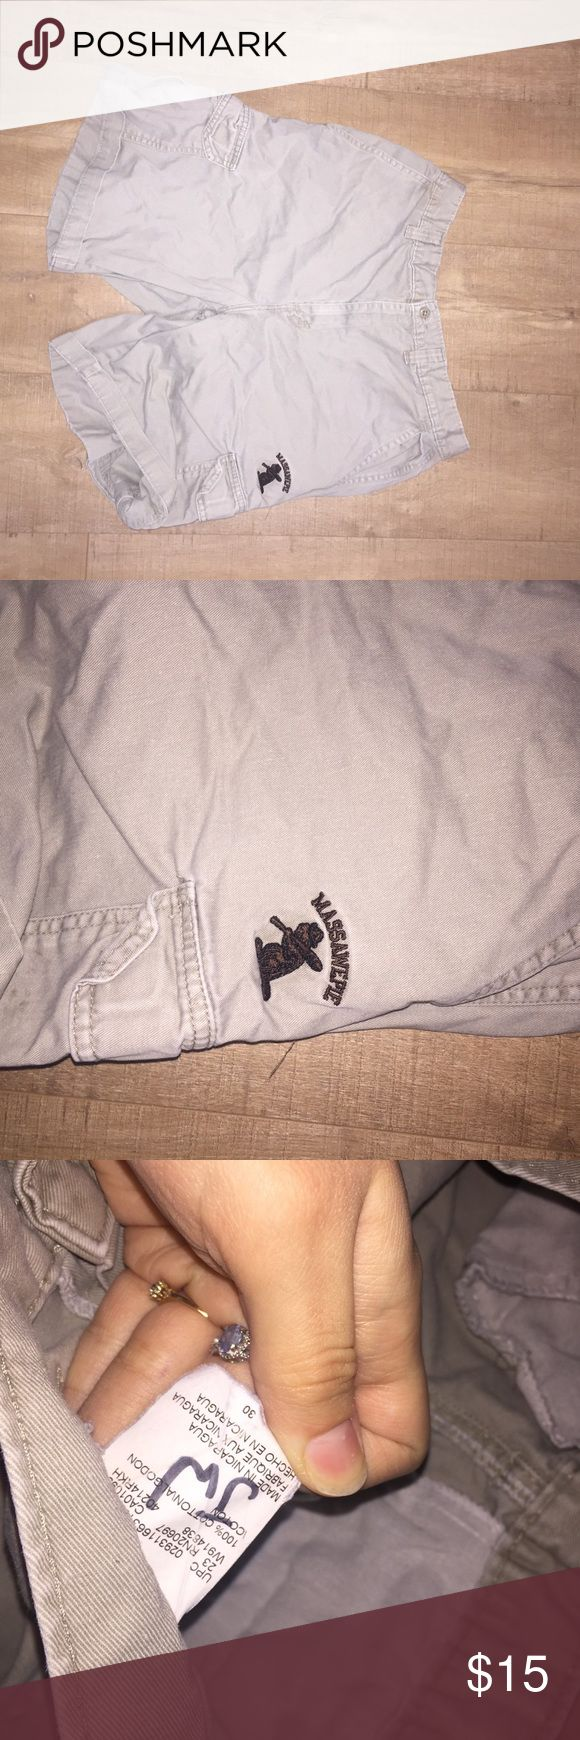 Dickies Shorts These have a massawepie scout camp patch on them. Waist size 30. Some signs of wear (see pictures). Dickies Shorts Cargo